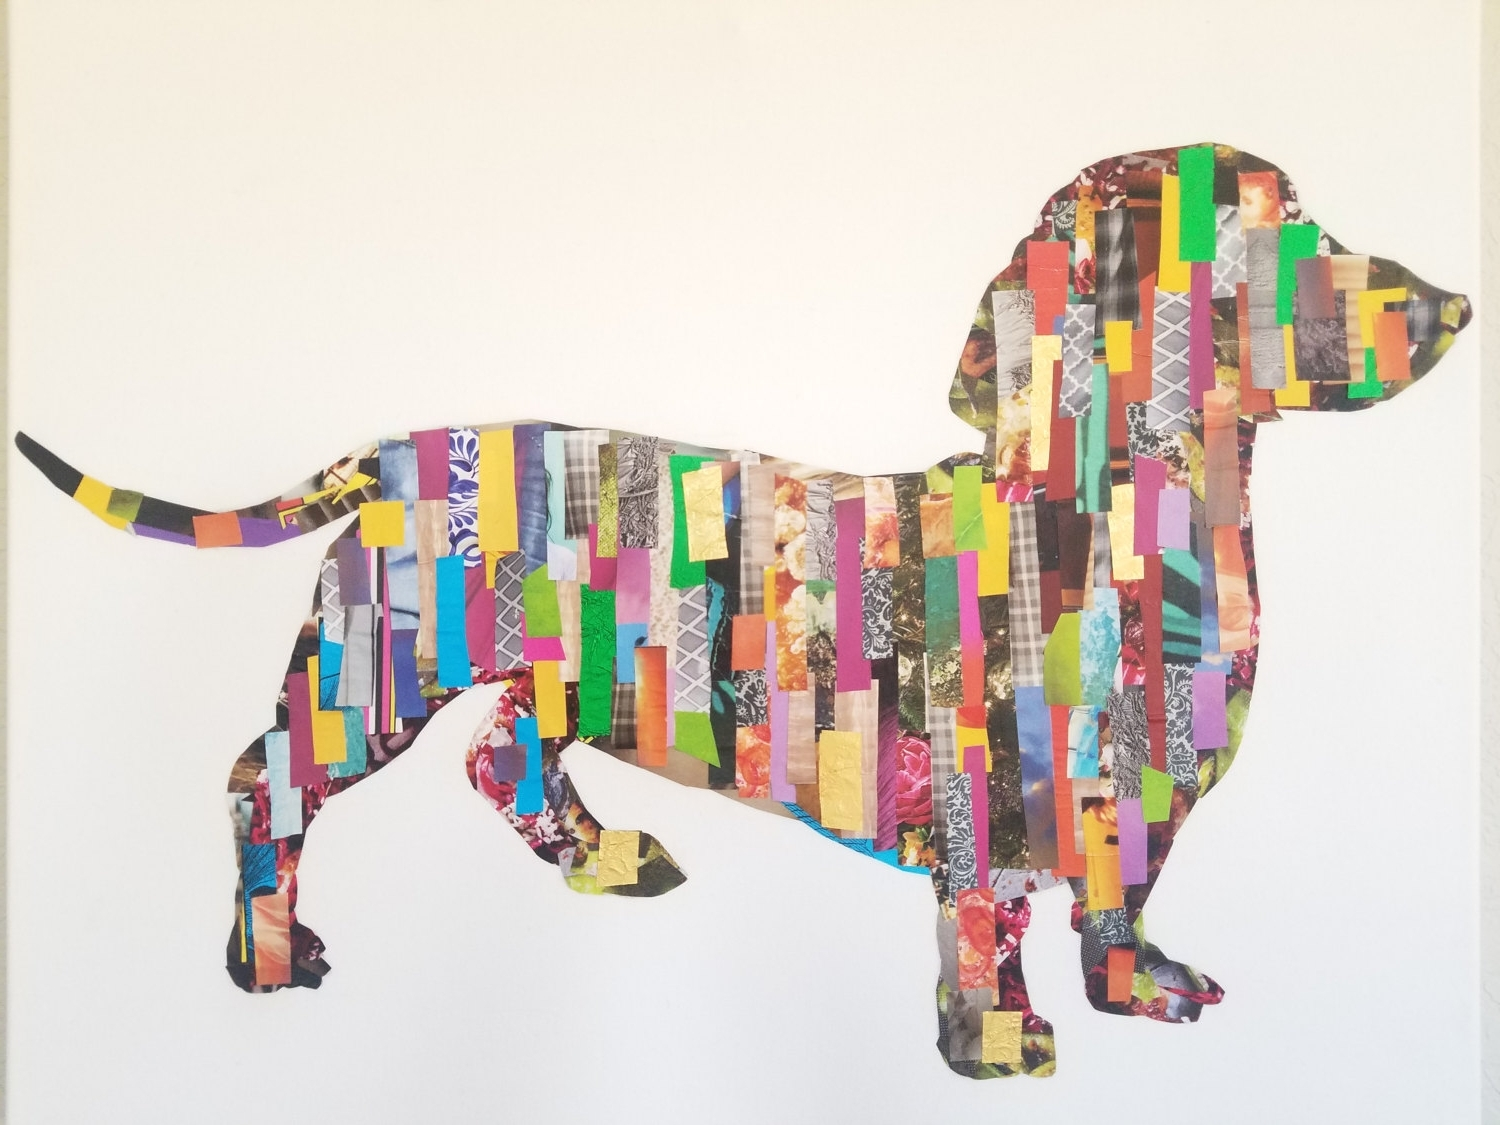 Dachshund Decoupage Wall Art Throughout Most Recently Released Dachshund Wall Art (Gallery 7 of 15)